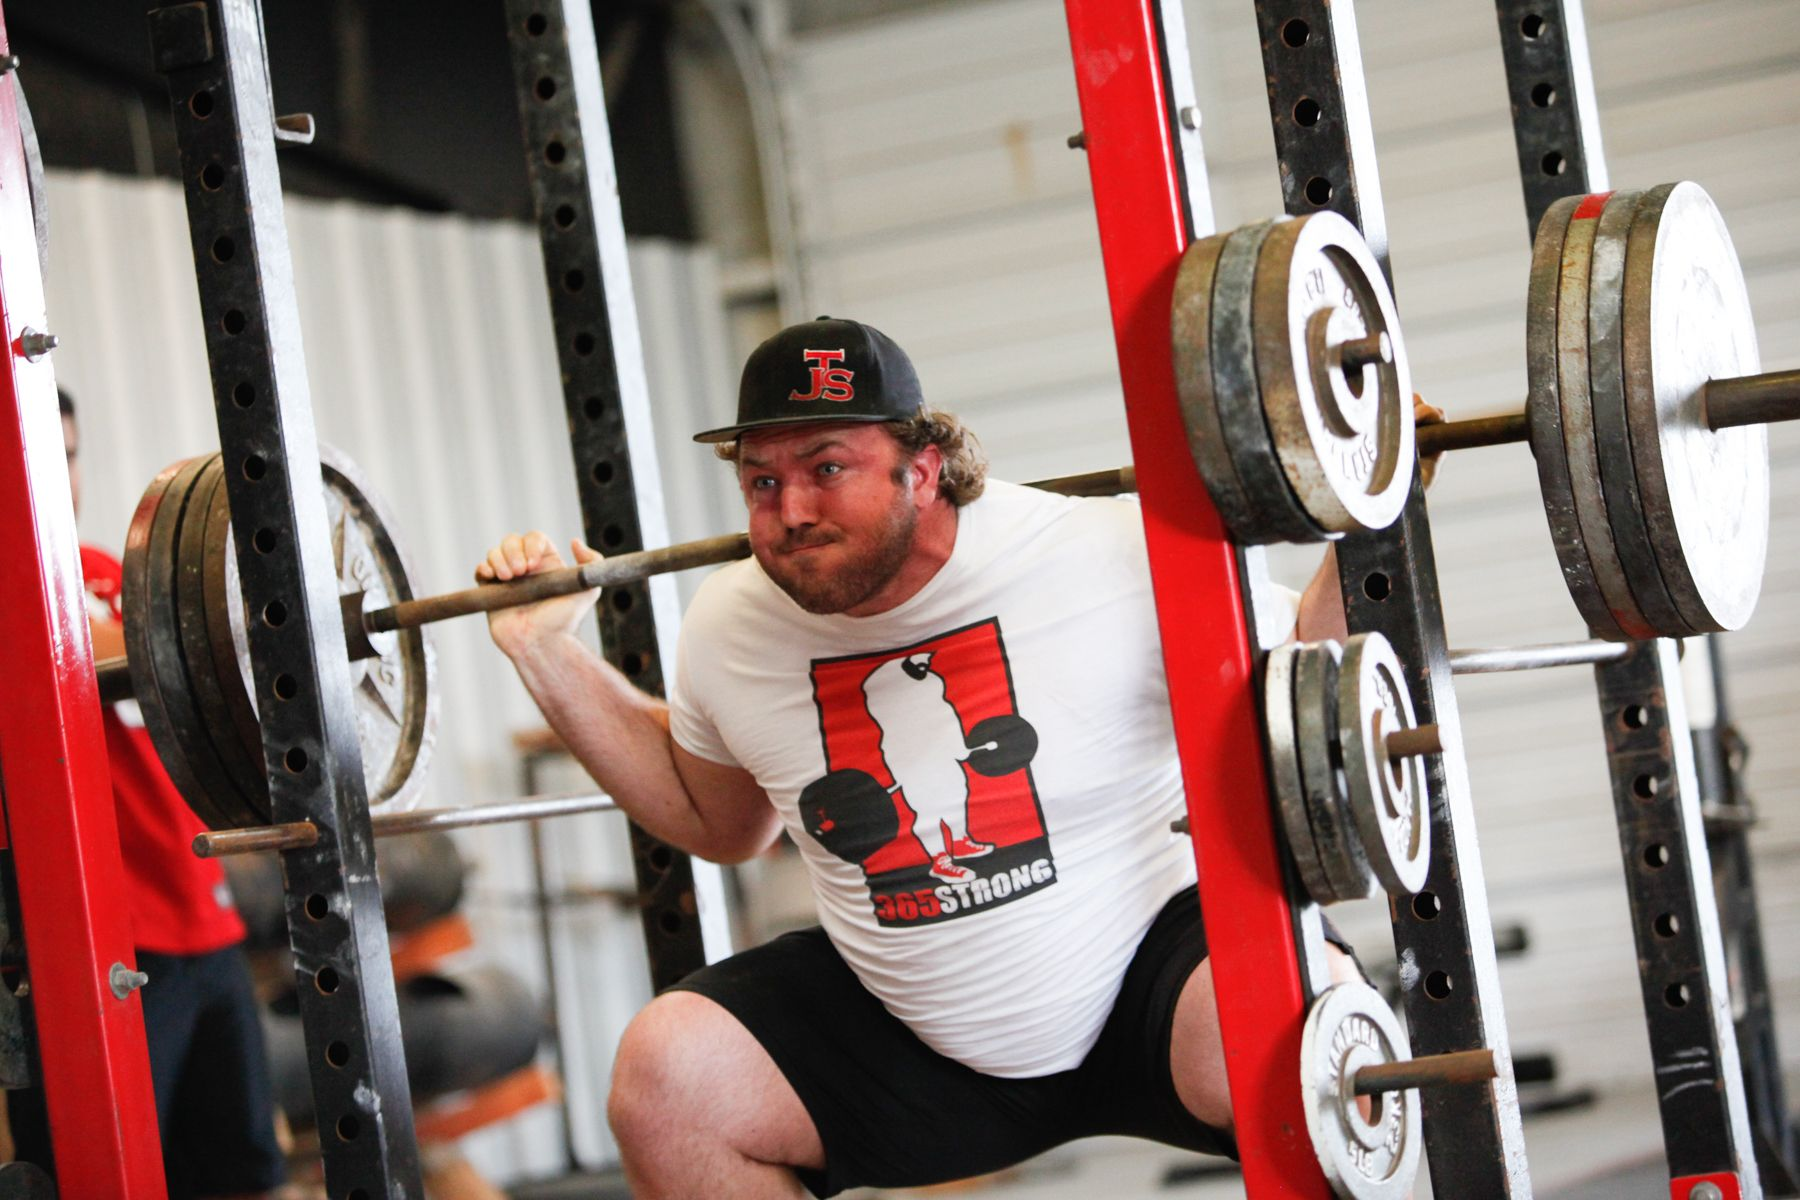 5f10130d85dff6 5 Things That Are Holding Your Squat Back - Juggernaut Training Systems - Juggernaut  Training Systems